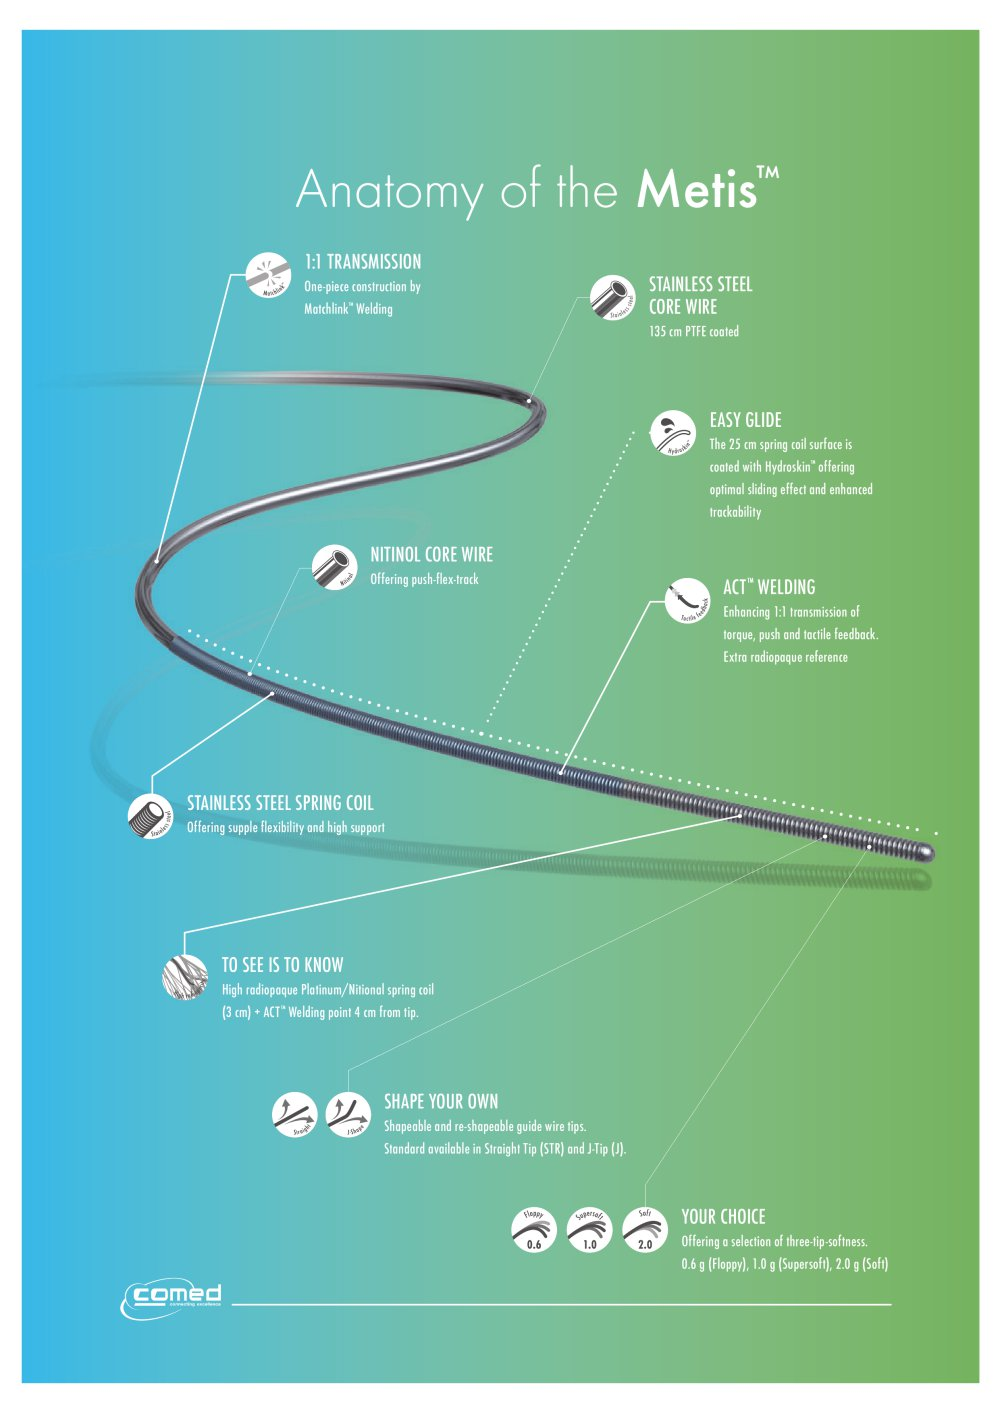 Anatomy of Metis Coronary Guide Wire - Comed - PDF Catalogue ...